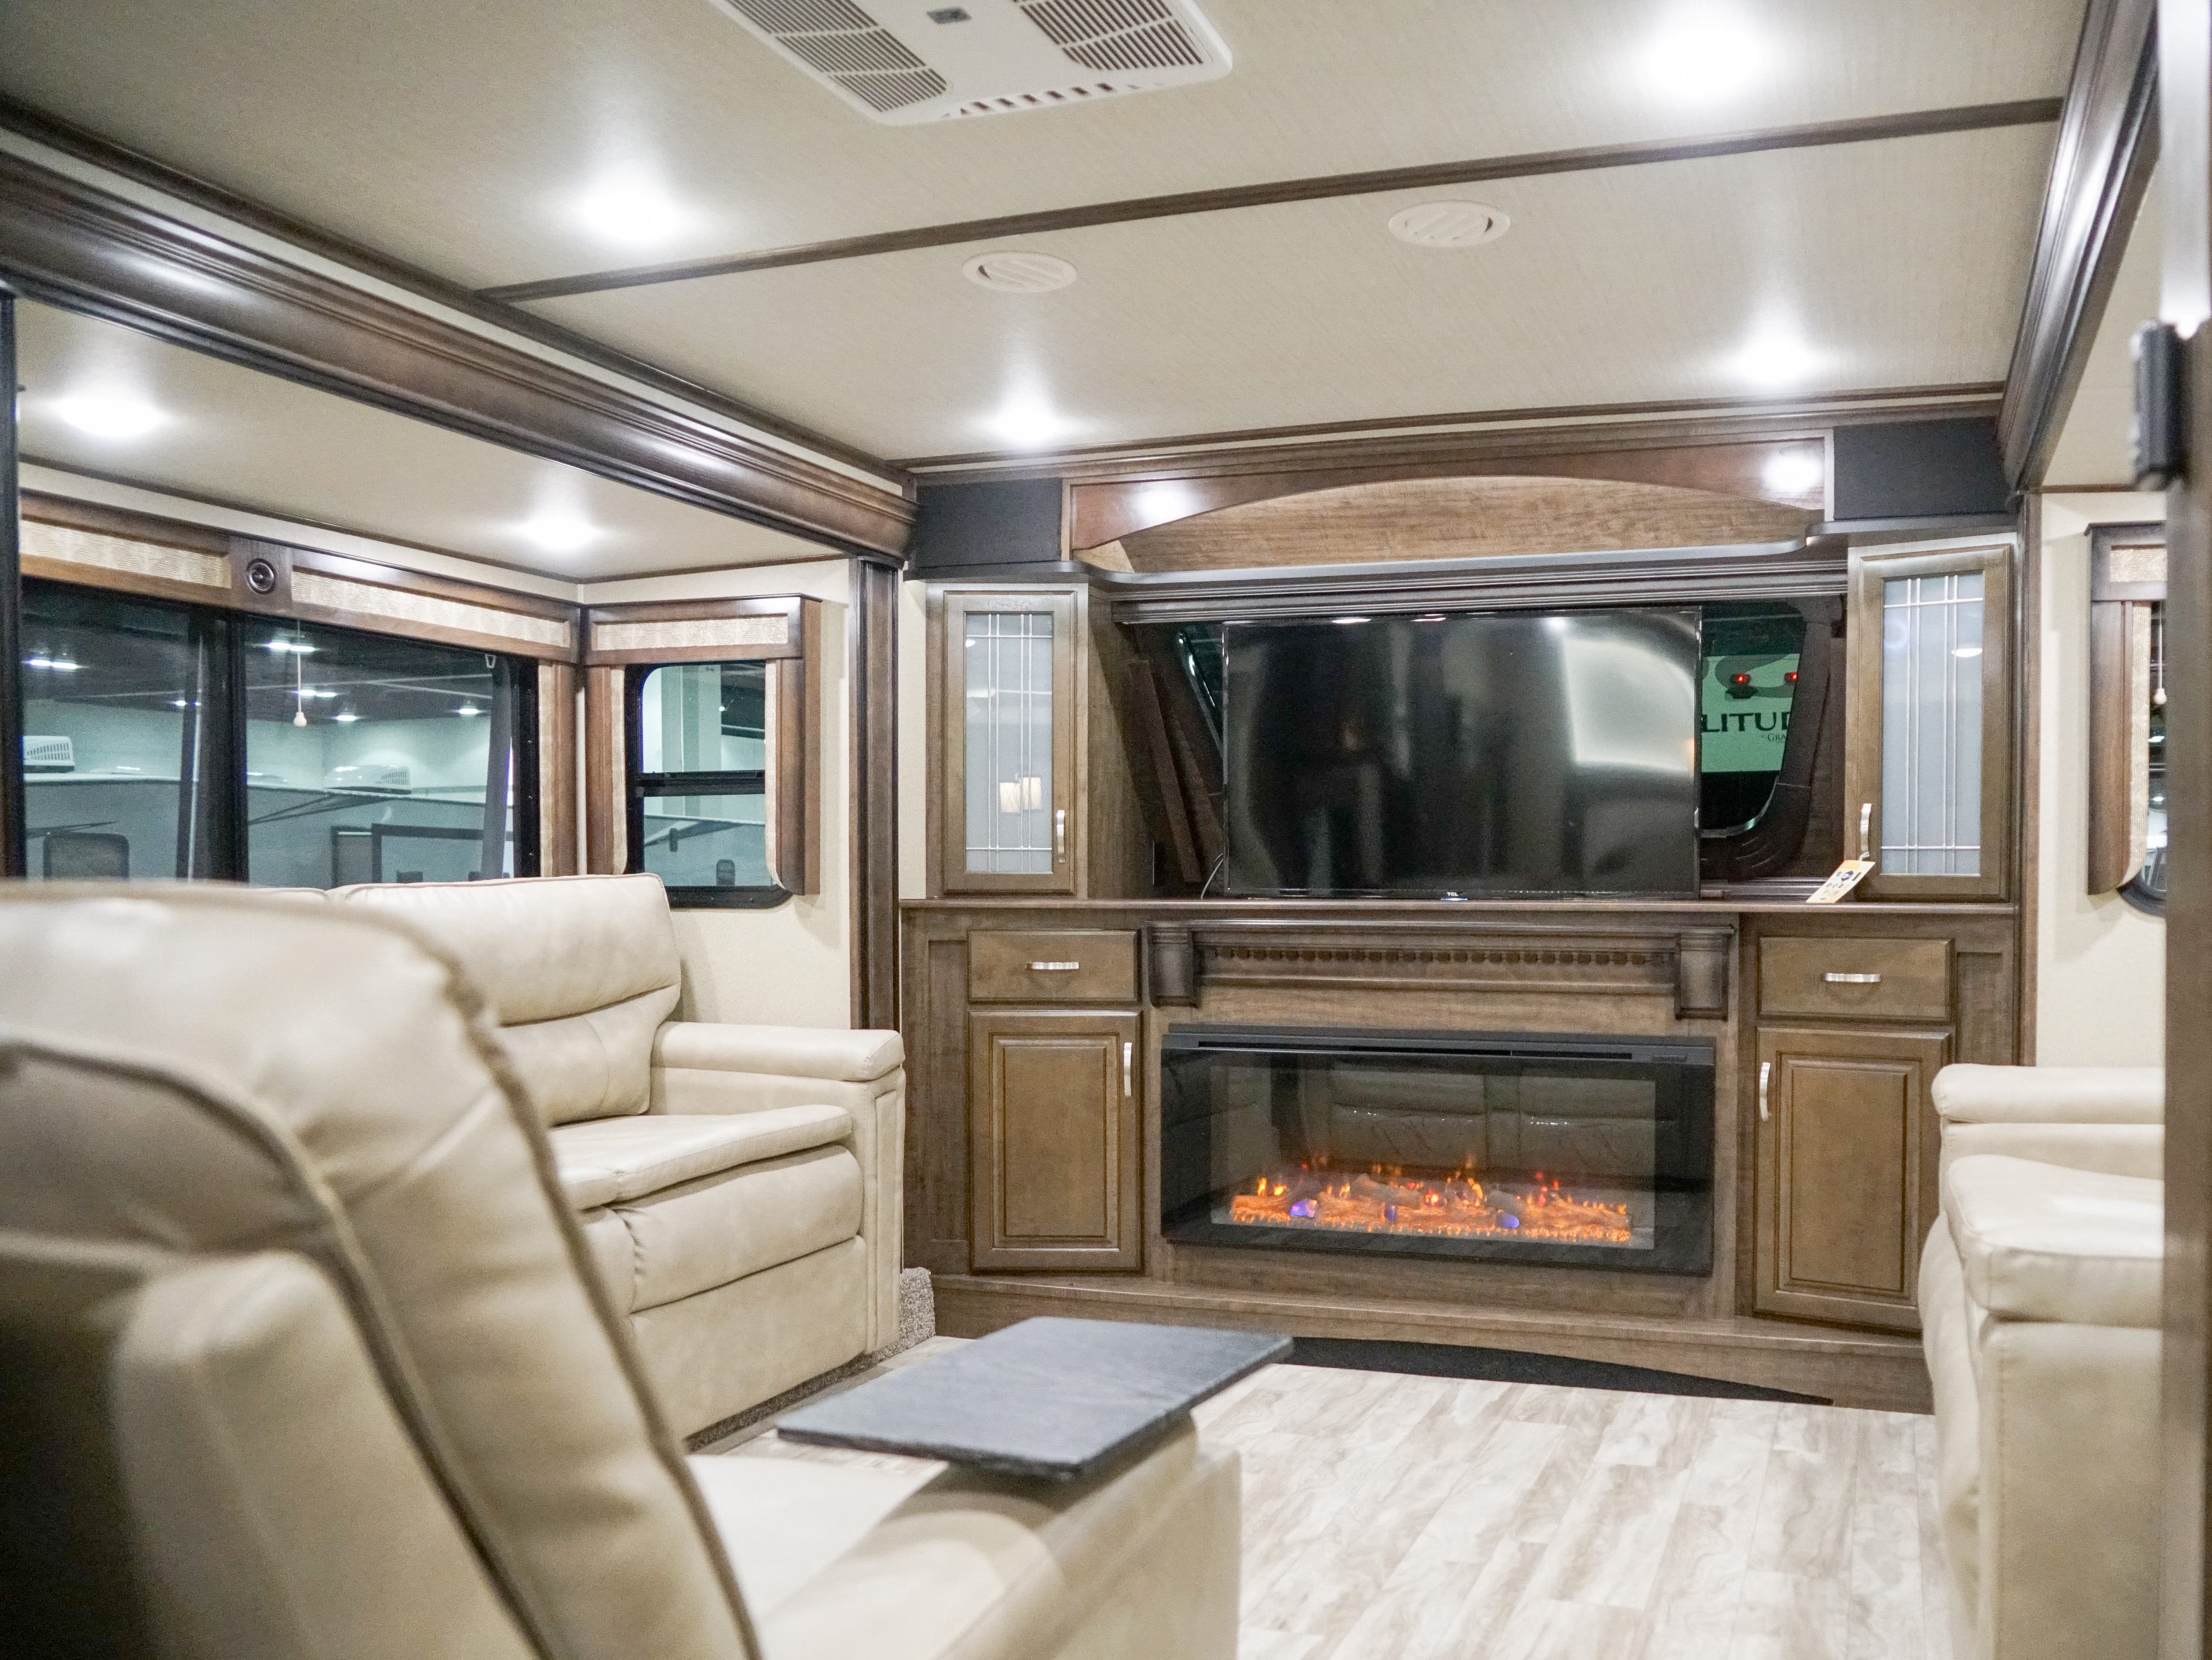 This RV's living room looks like it's been transplanted from a house.